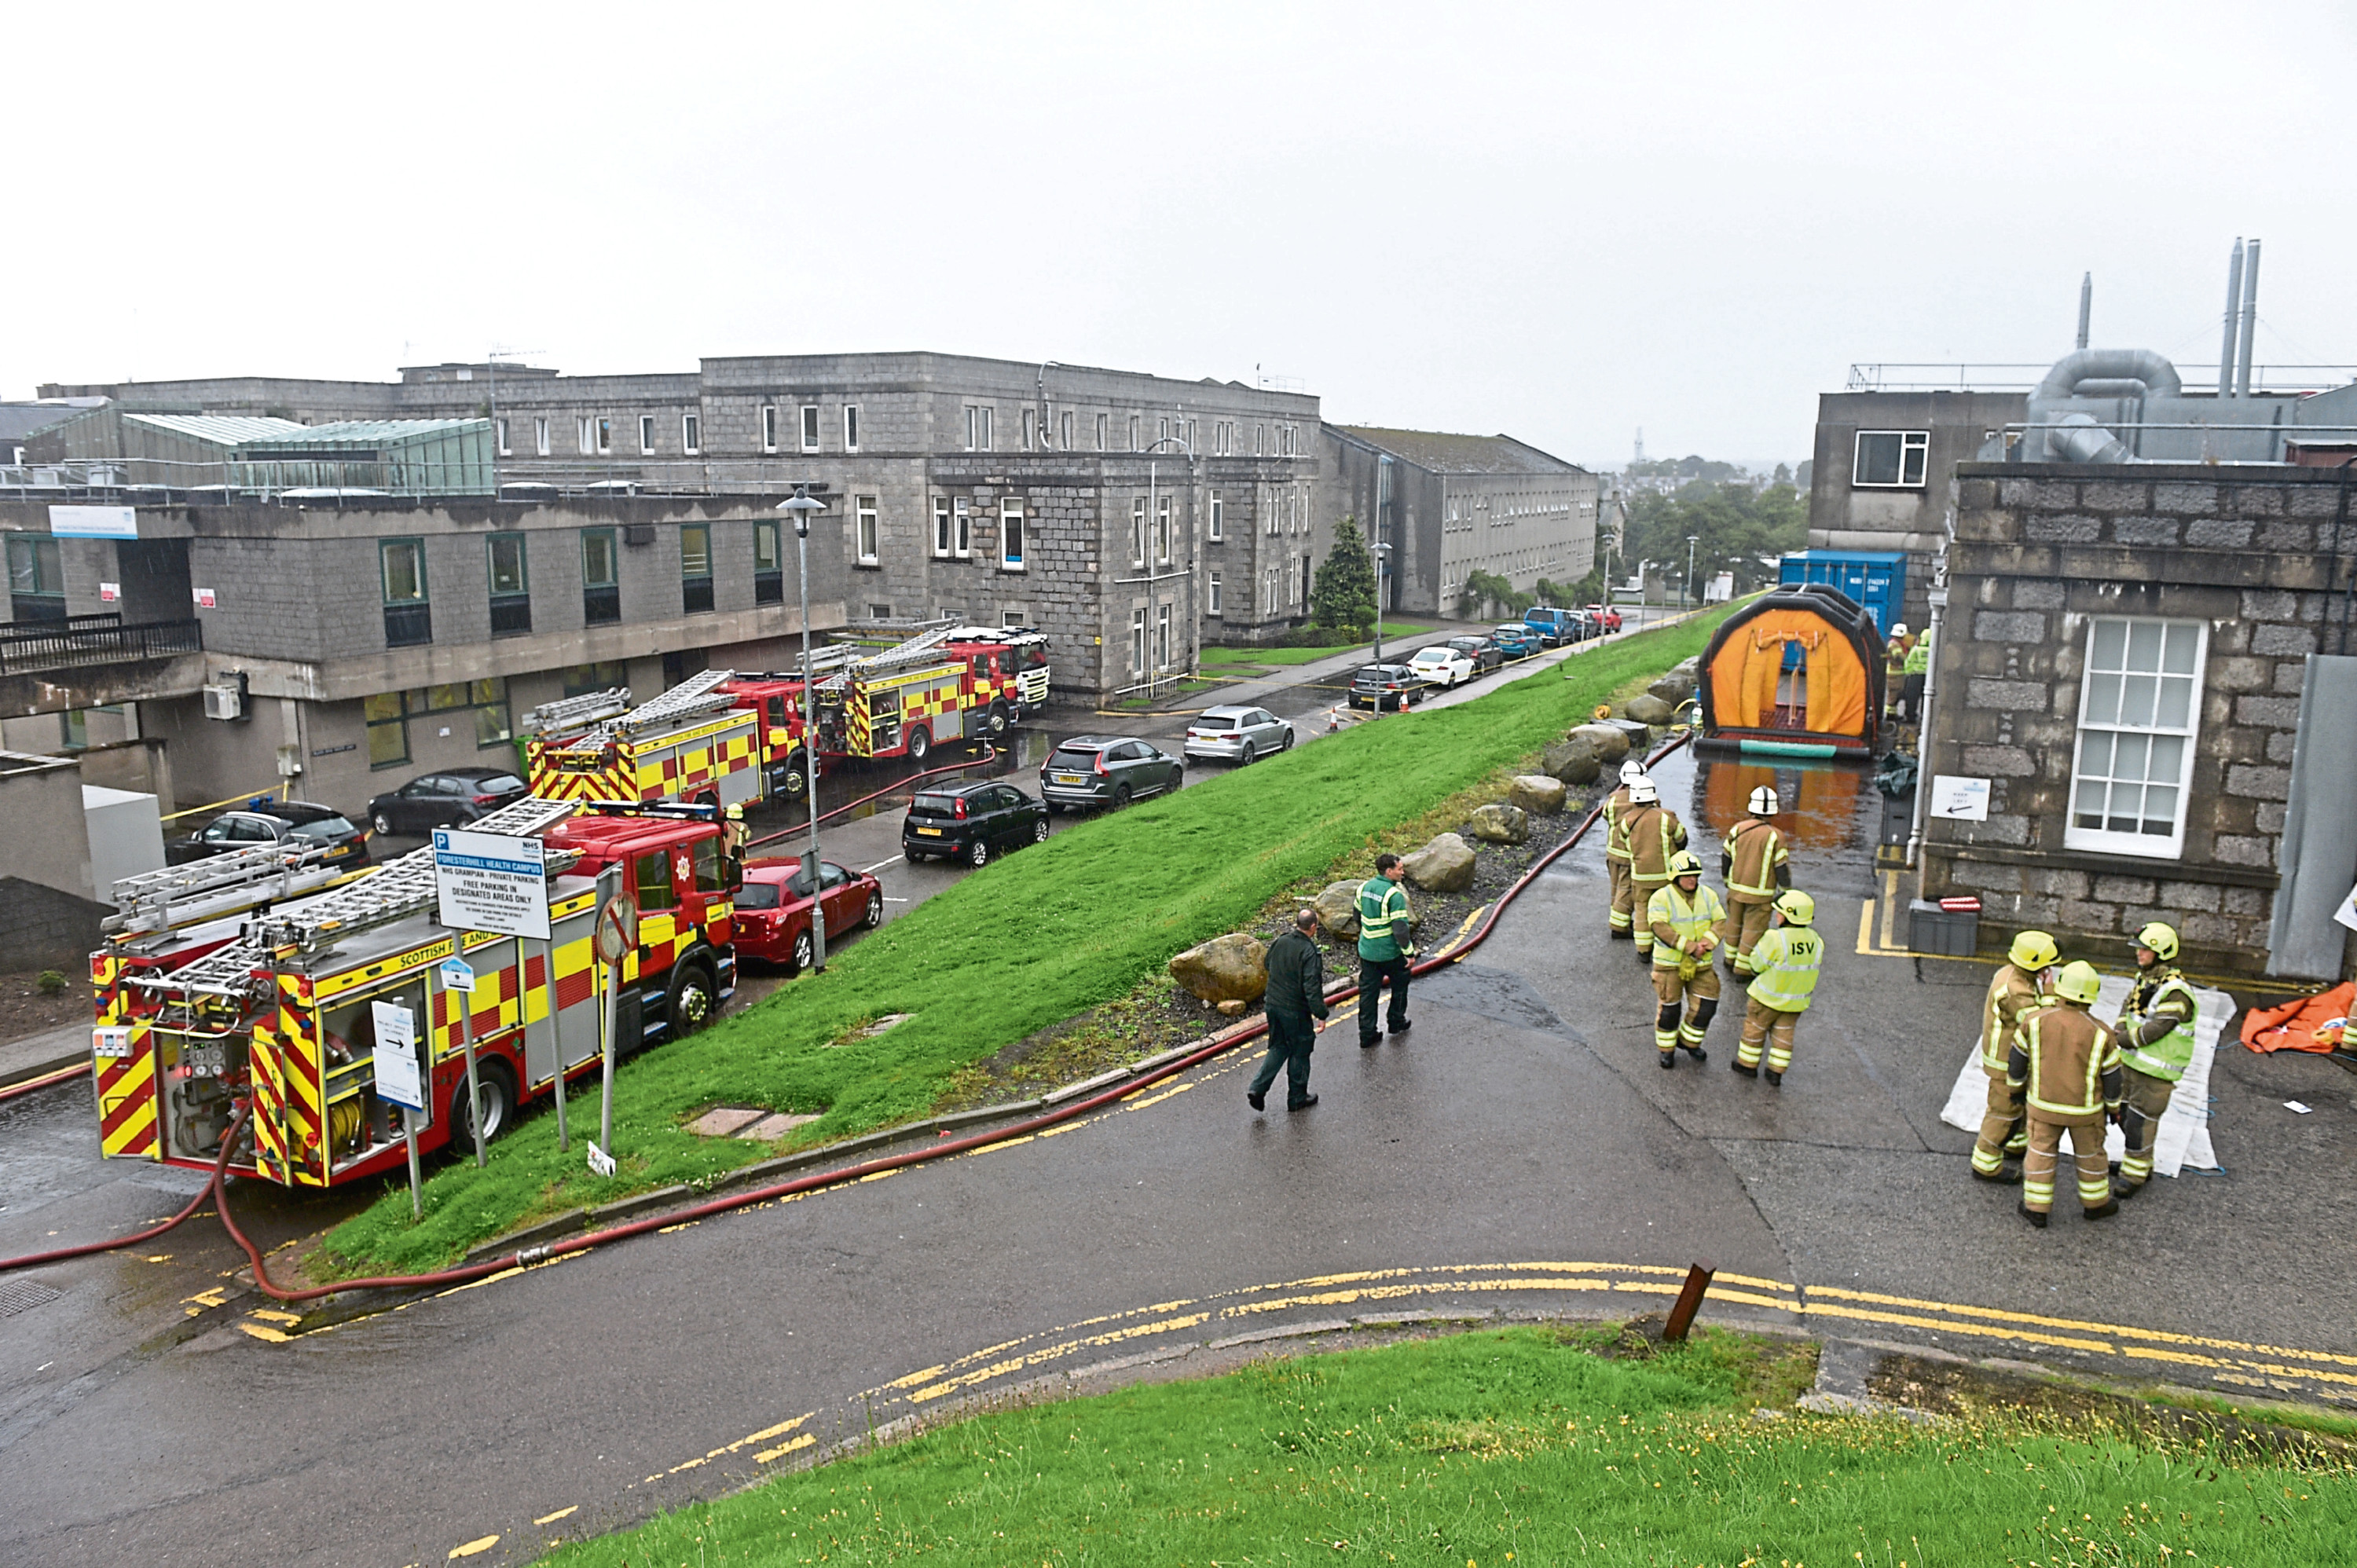 Emergency services in attendance at ARI following reports of a suspicious package